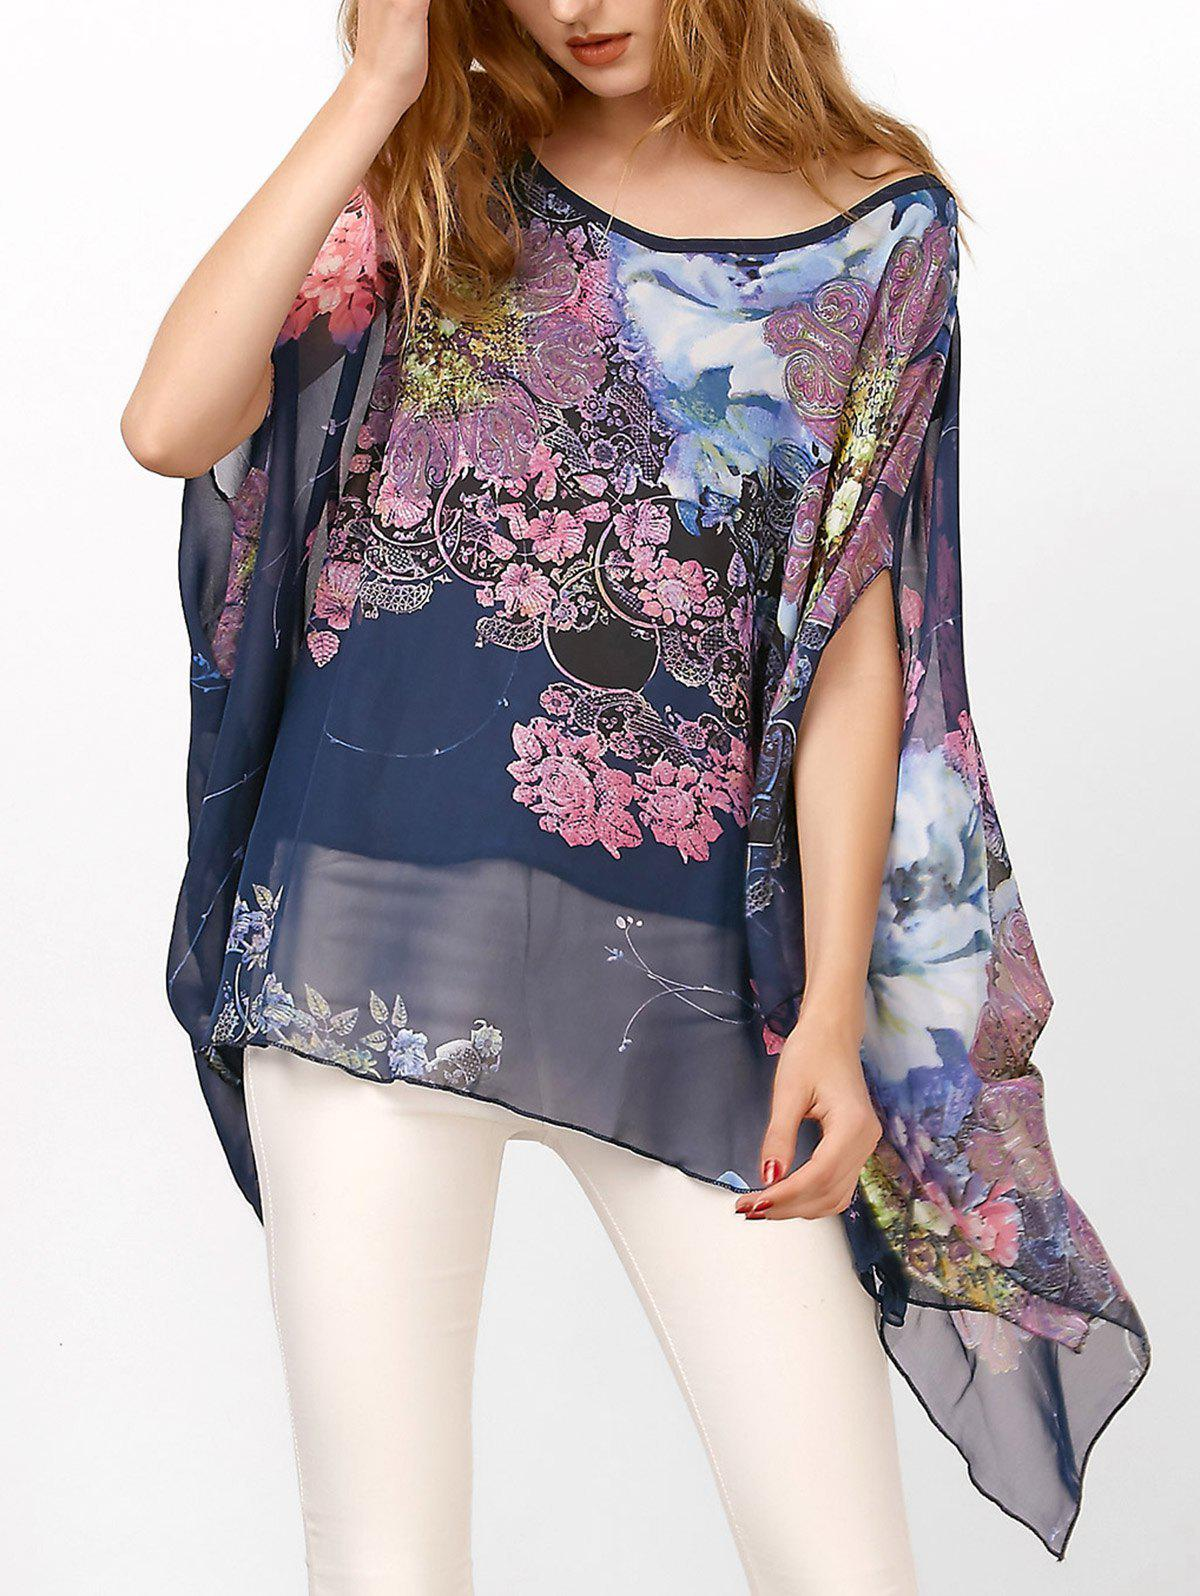 Chiffon Batwing Cape Asymmetrical Floral BlouseWOMEN<br><br>Size: ONE SIZE; Color: DEEP BLUE; Occasion: Casual; Style: Casual; Material: Polyester; Fabric Type: Chiffon; Shirt Length: Regular; Sleeve Length: Short; Sleeve Type: Batwing Sleeve; Collar: Round Neck; Pattern Type: Floral; Season: Fall,Spring,Summer; Weight: 0.2100kg; Package Contents: 1 x Blouse;